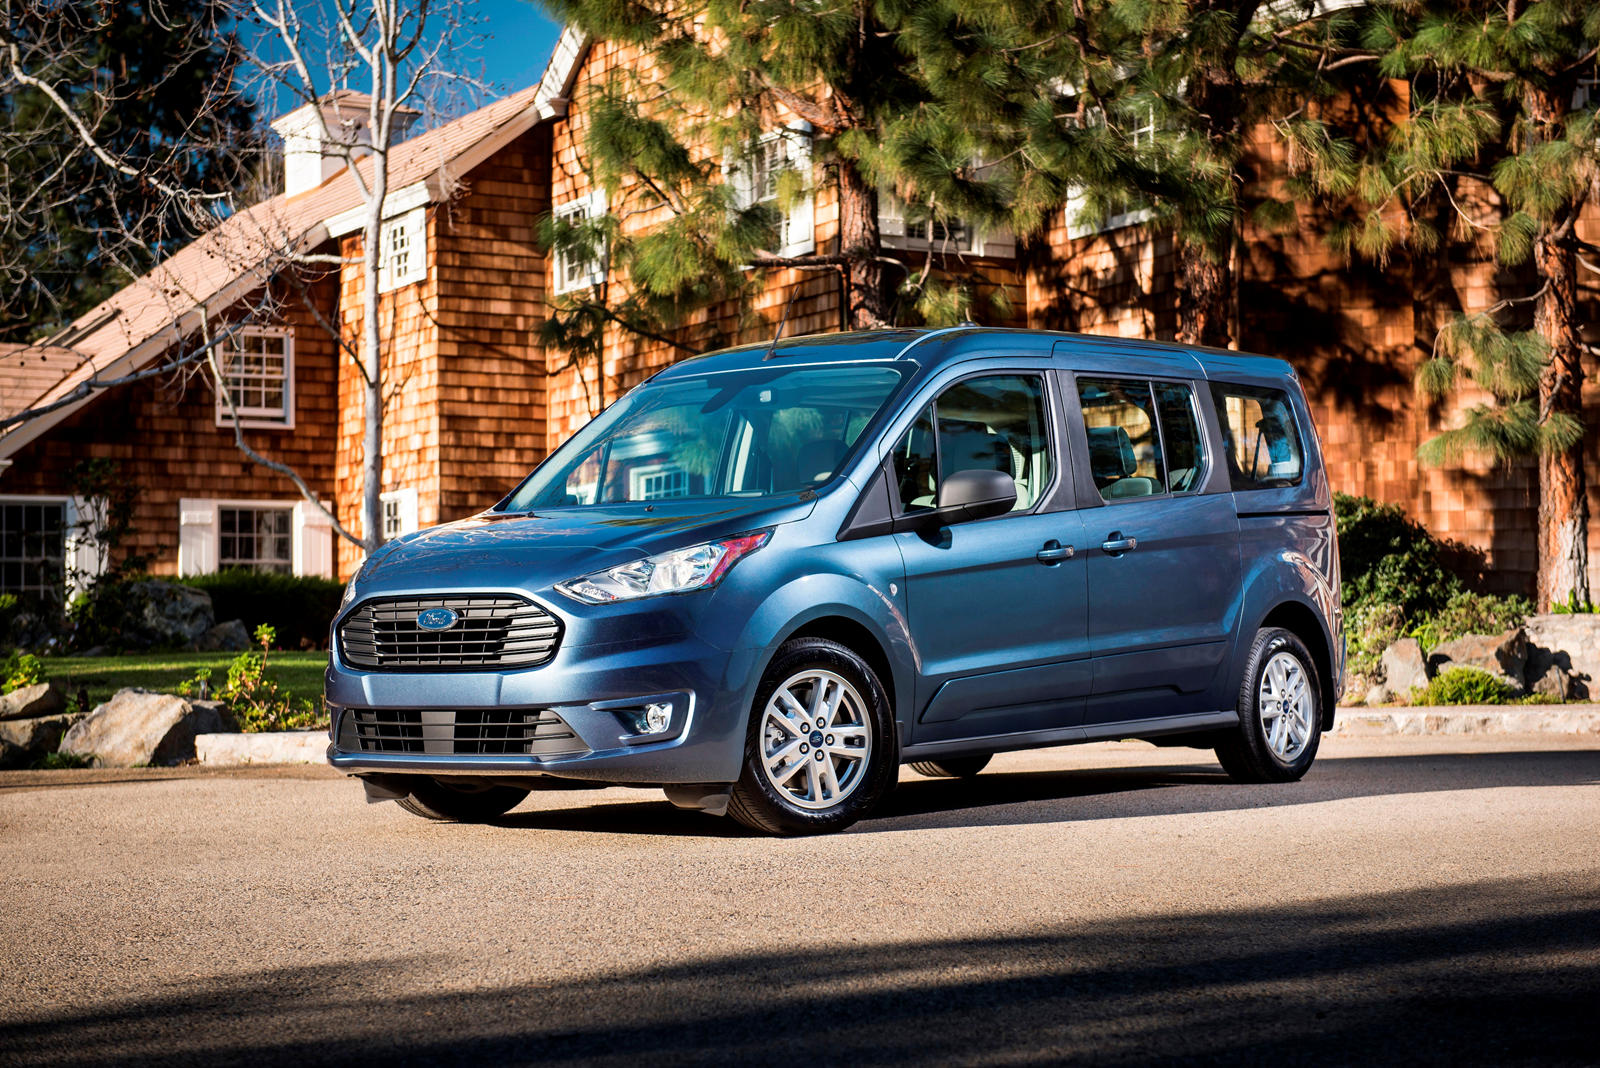 2020 ford transit connect passenger wagon review trims specs price new interior features exterior design and specifications carbuzz carbuzz